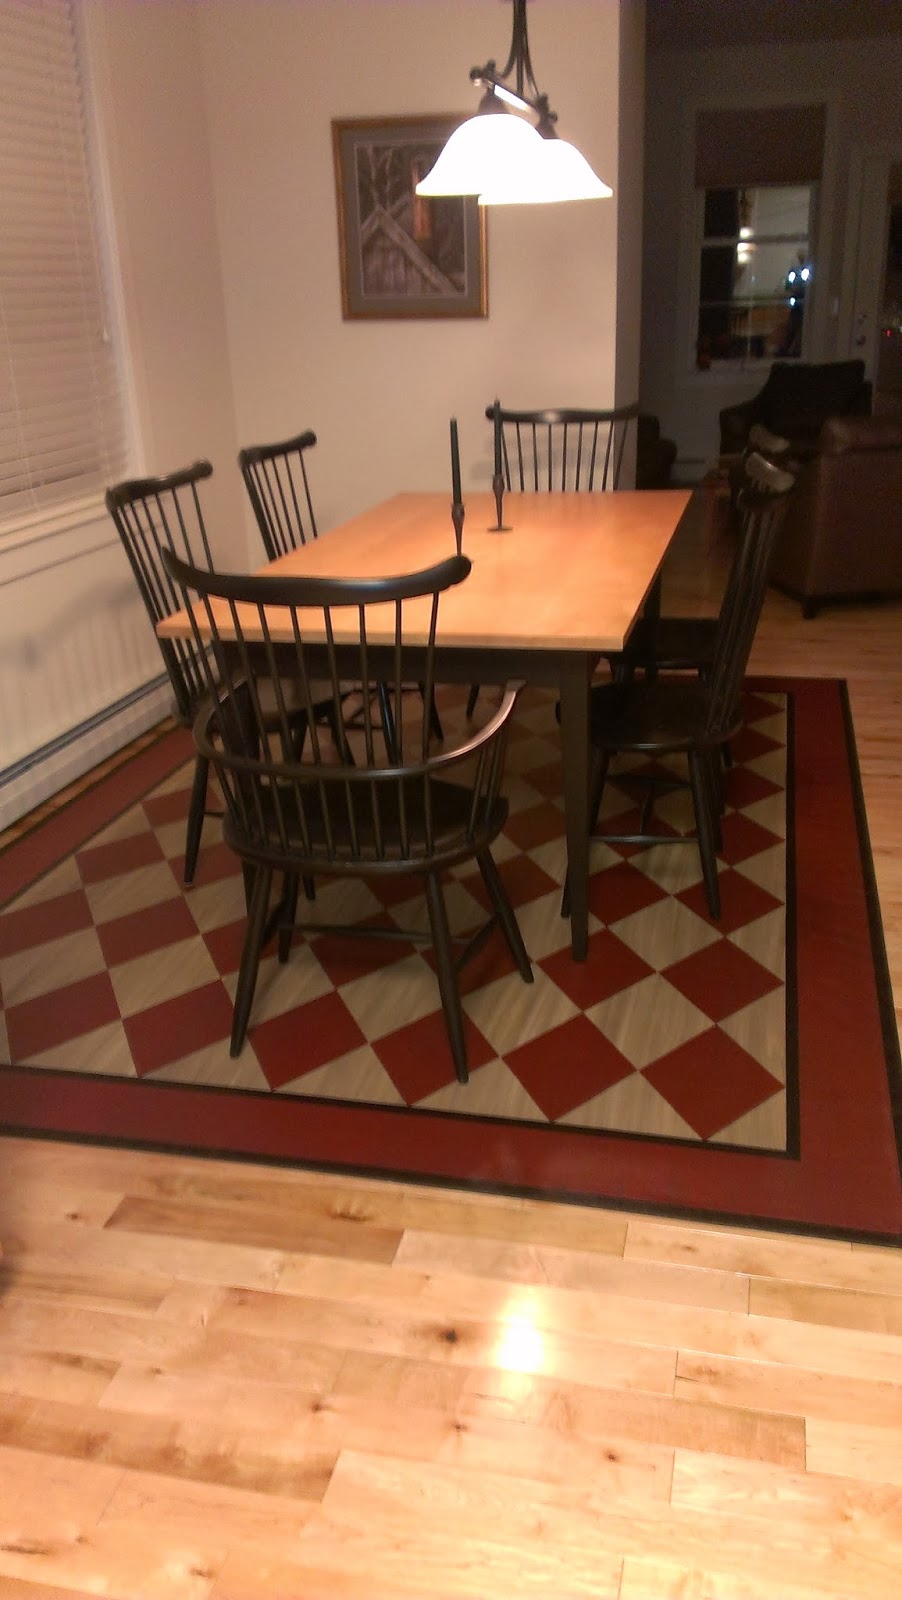 windsor chairs, timothy clark, vermont furniture, hand made